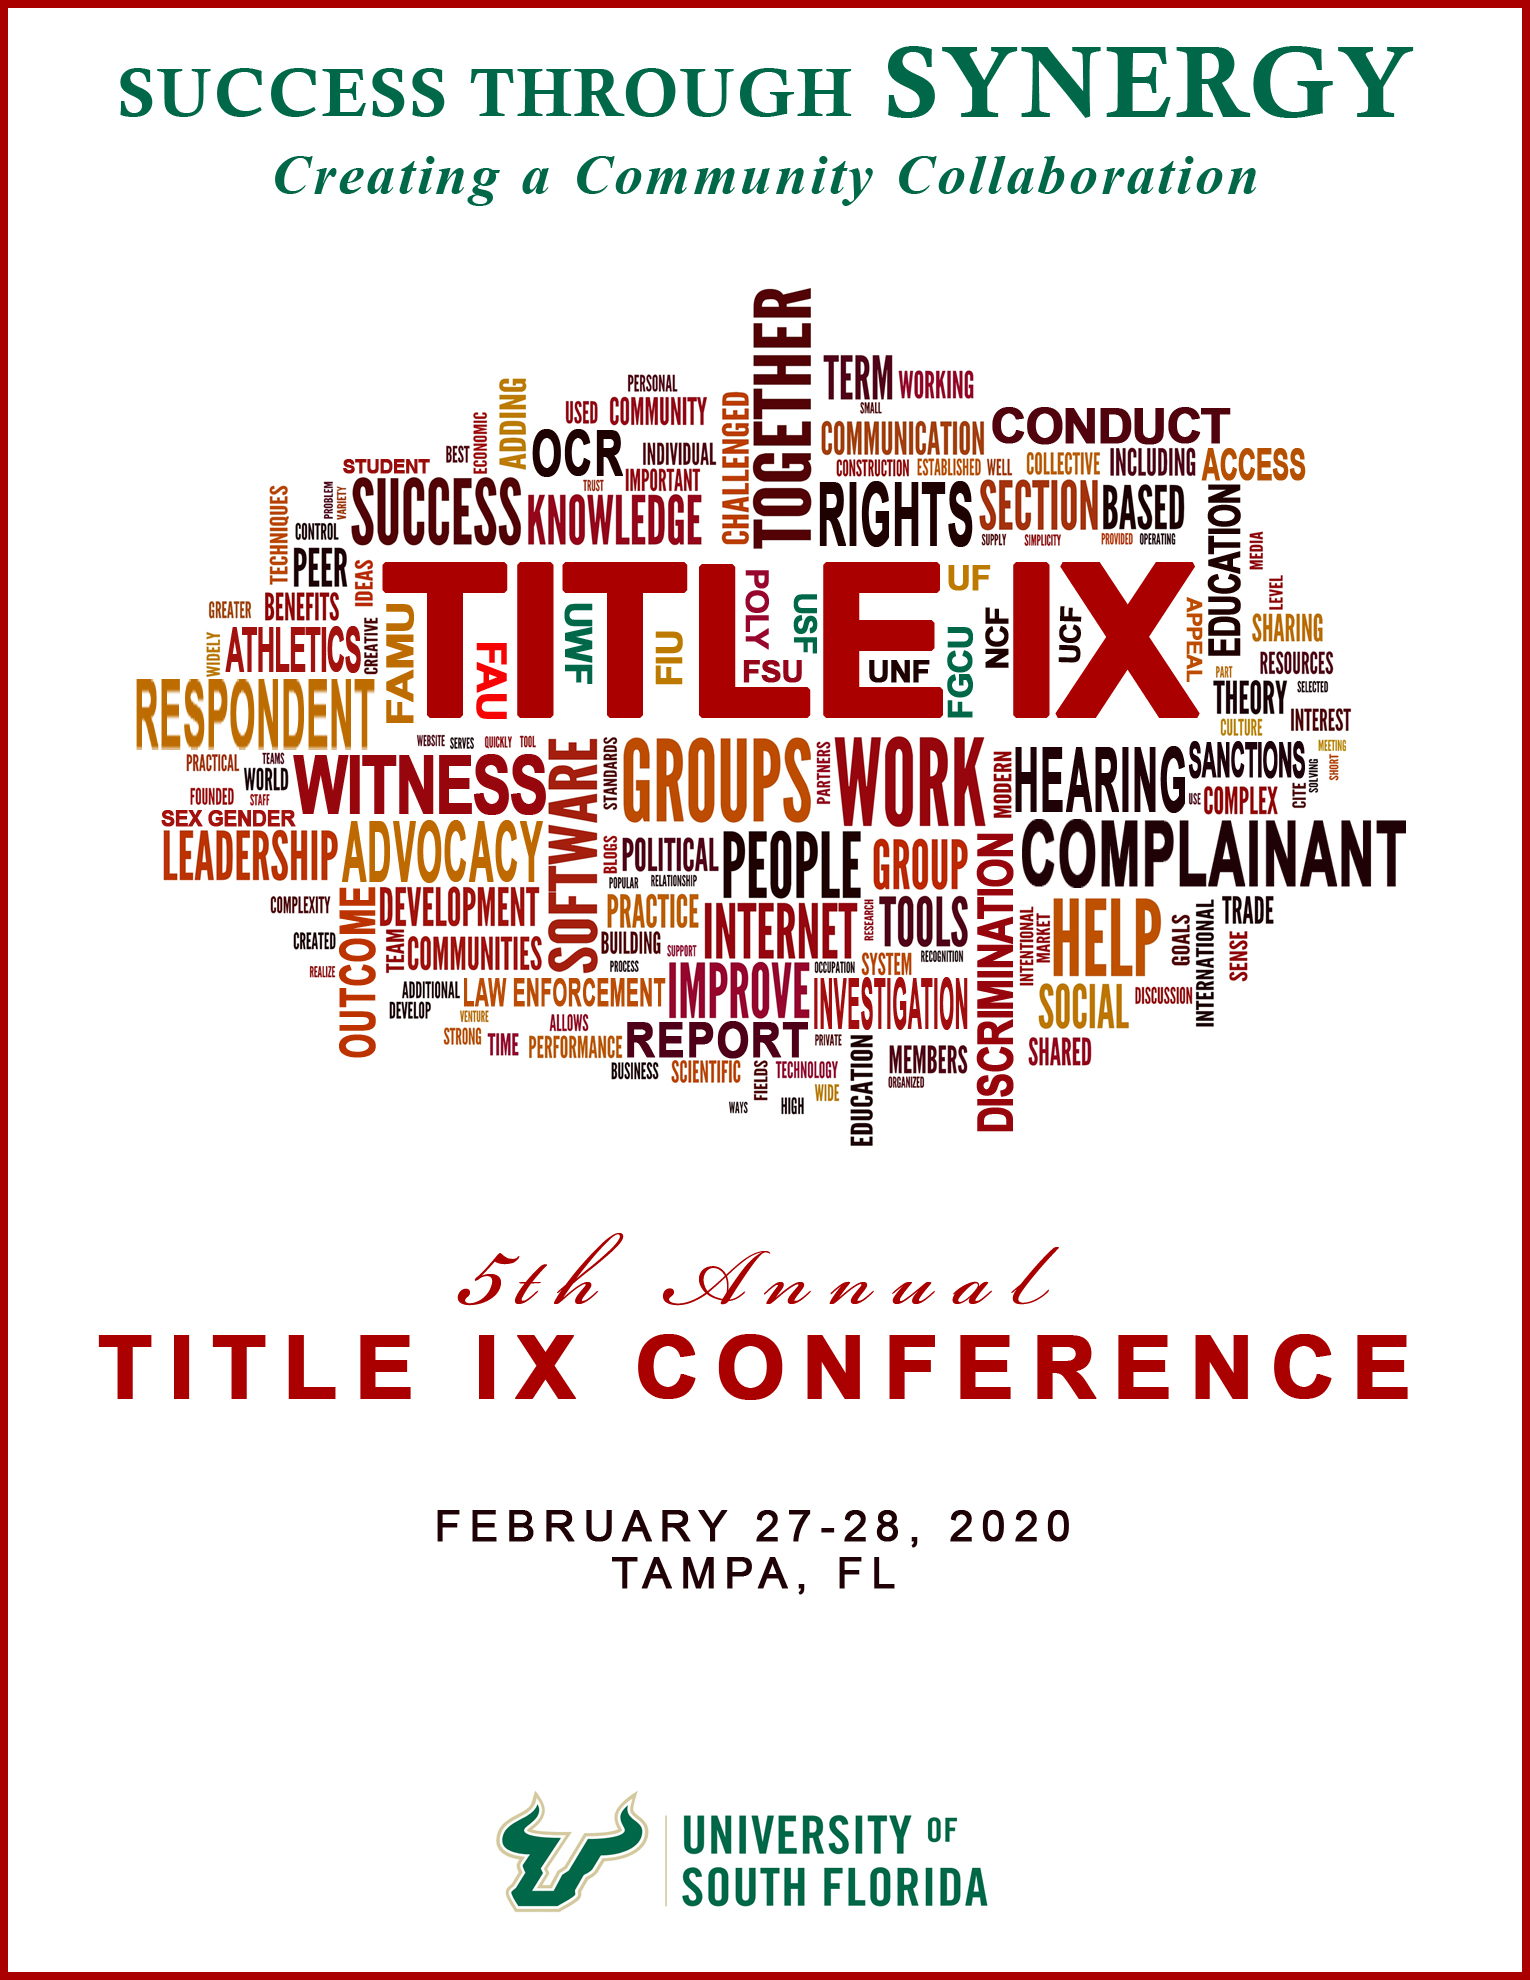 promotional image for title IX 2020 conference